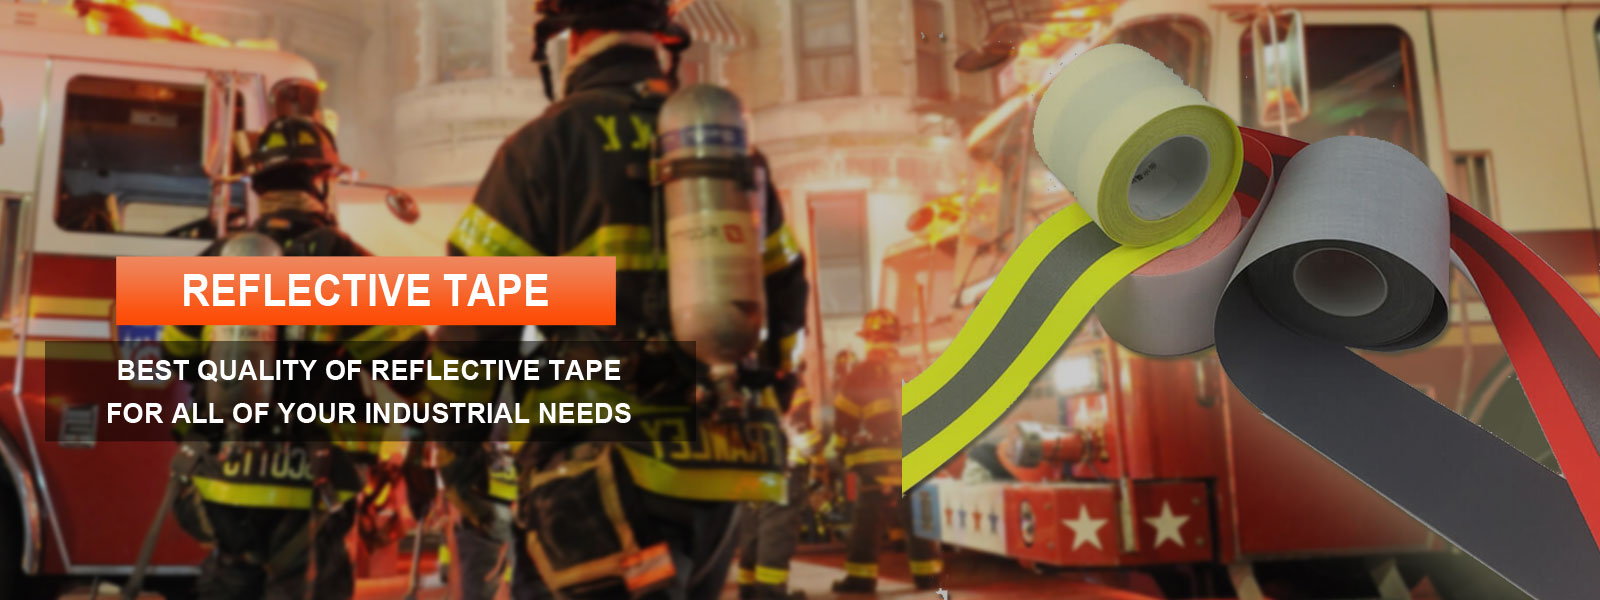 Reflective Tape Manufacturers in Ludhiana